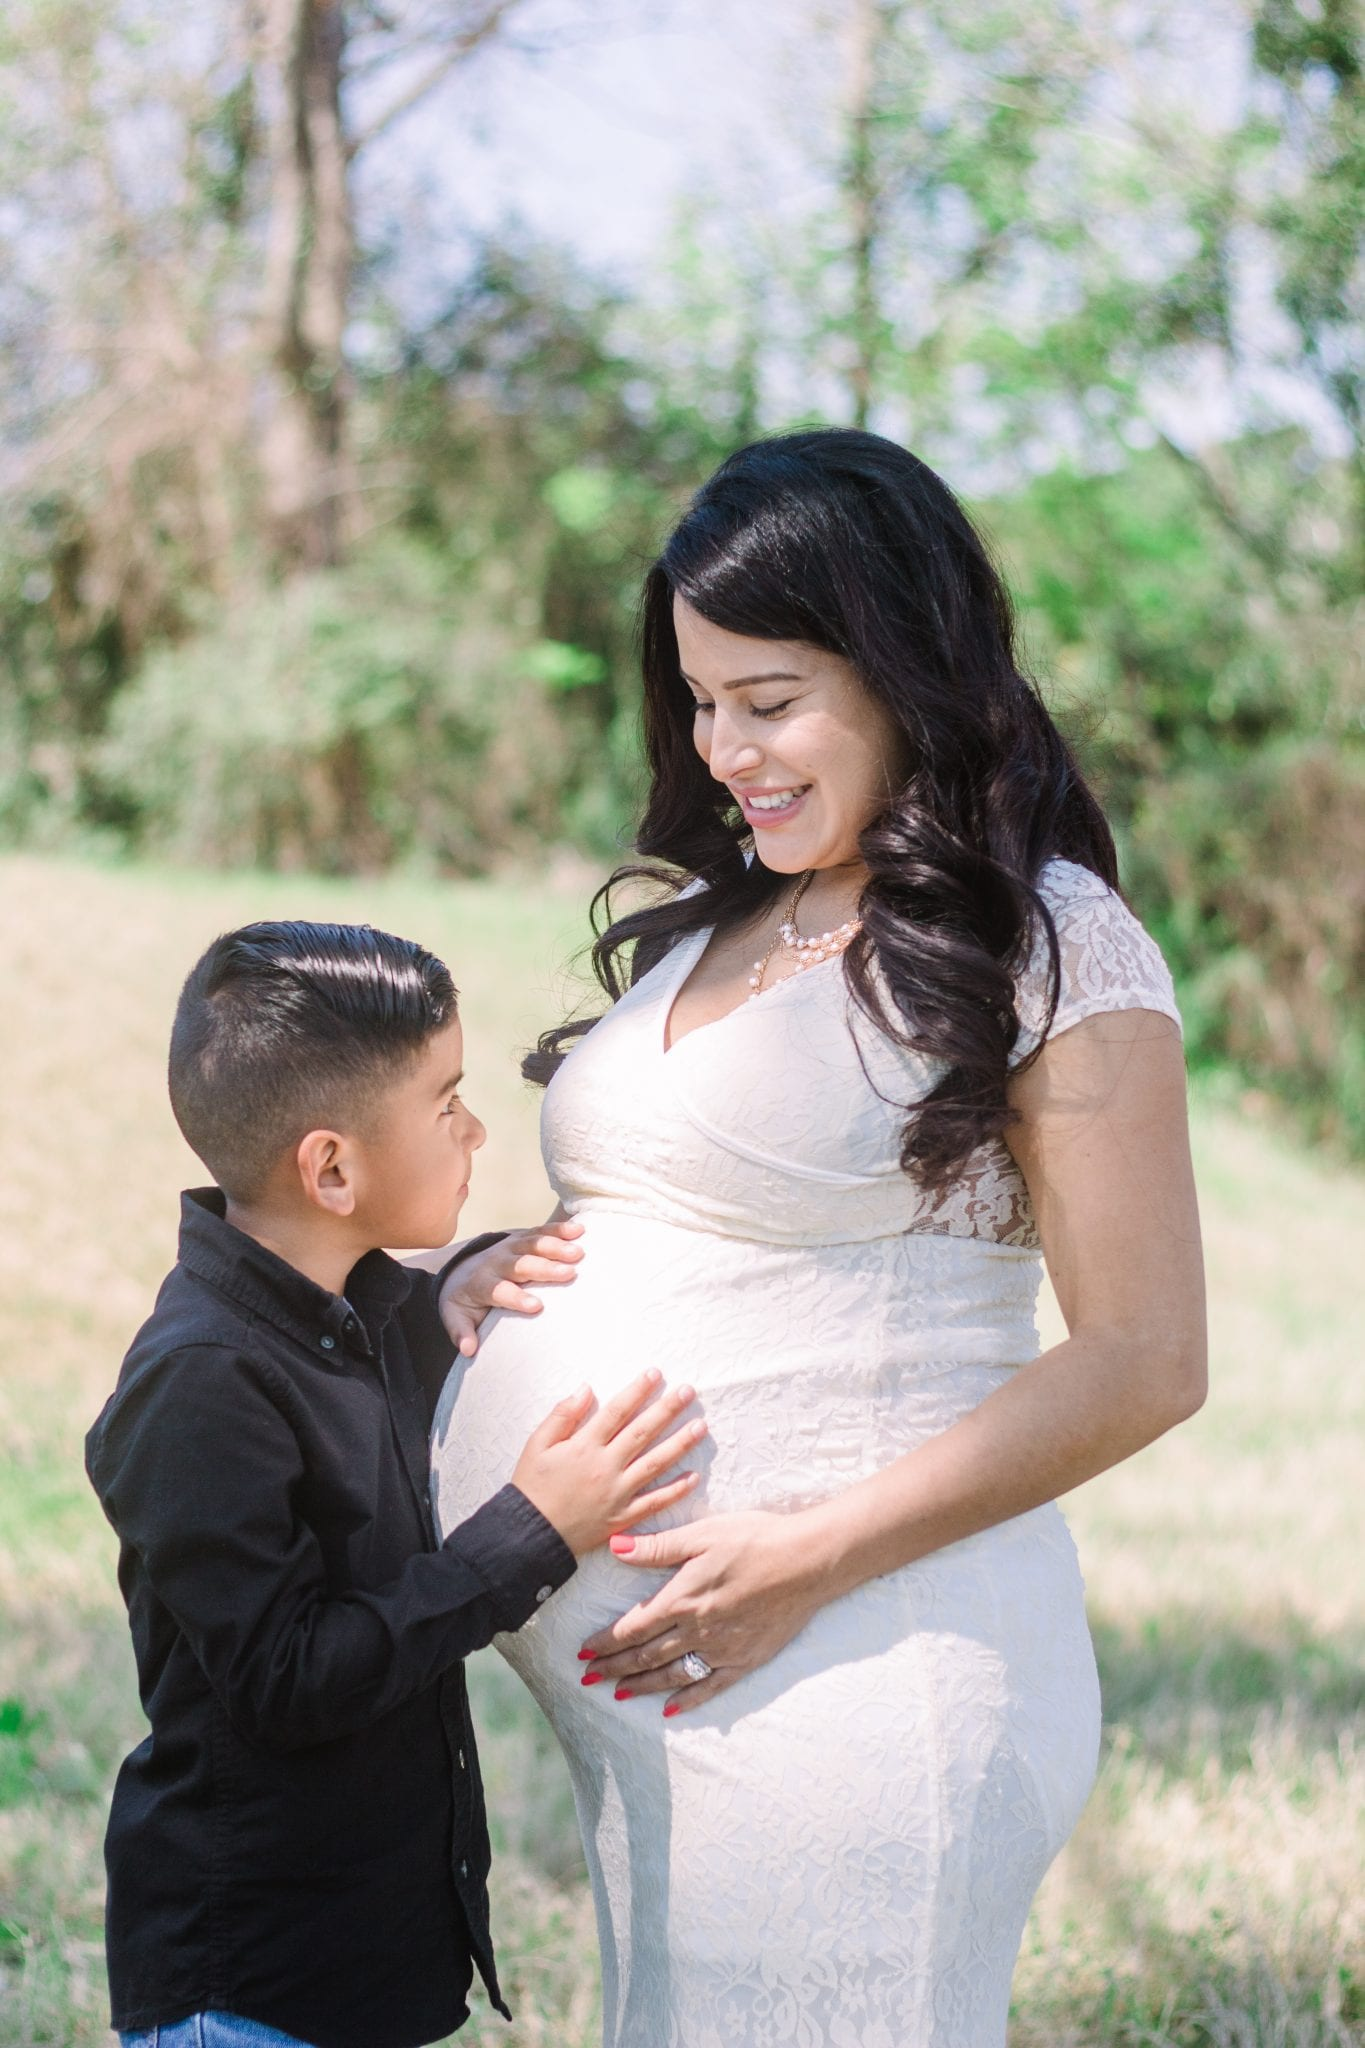 Sonia & Her Sweet Boy | Mother & Me in Houston, Tx